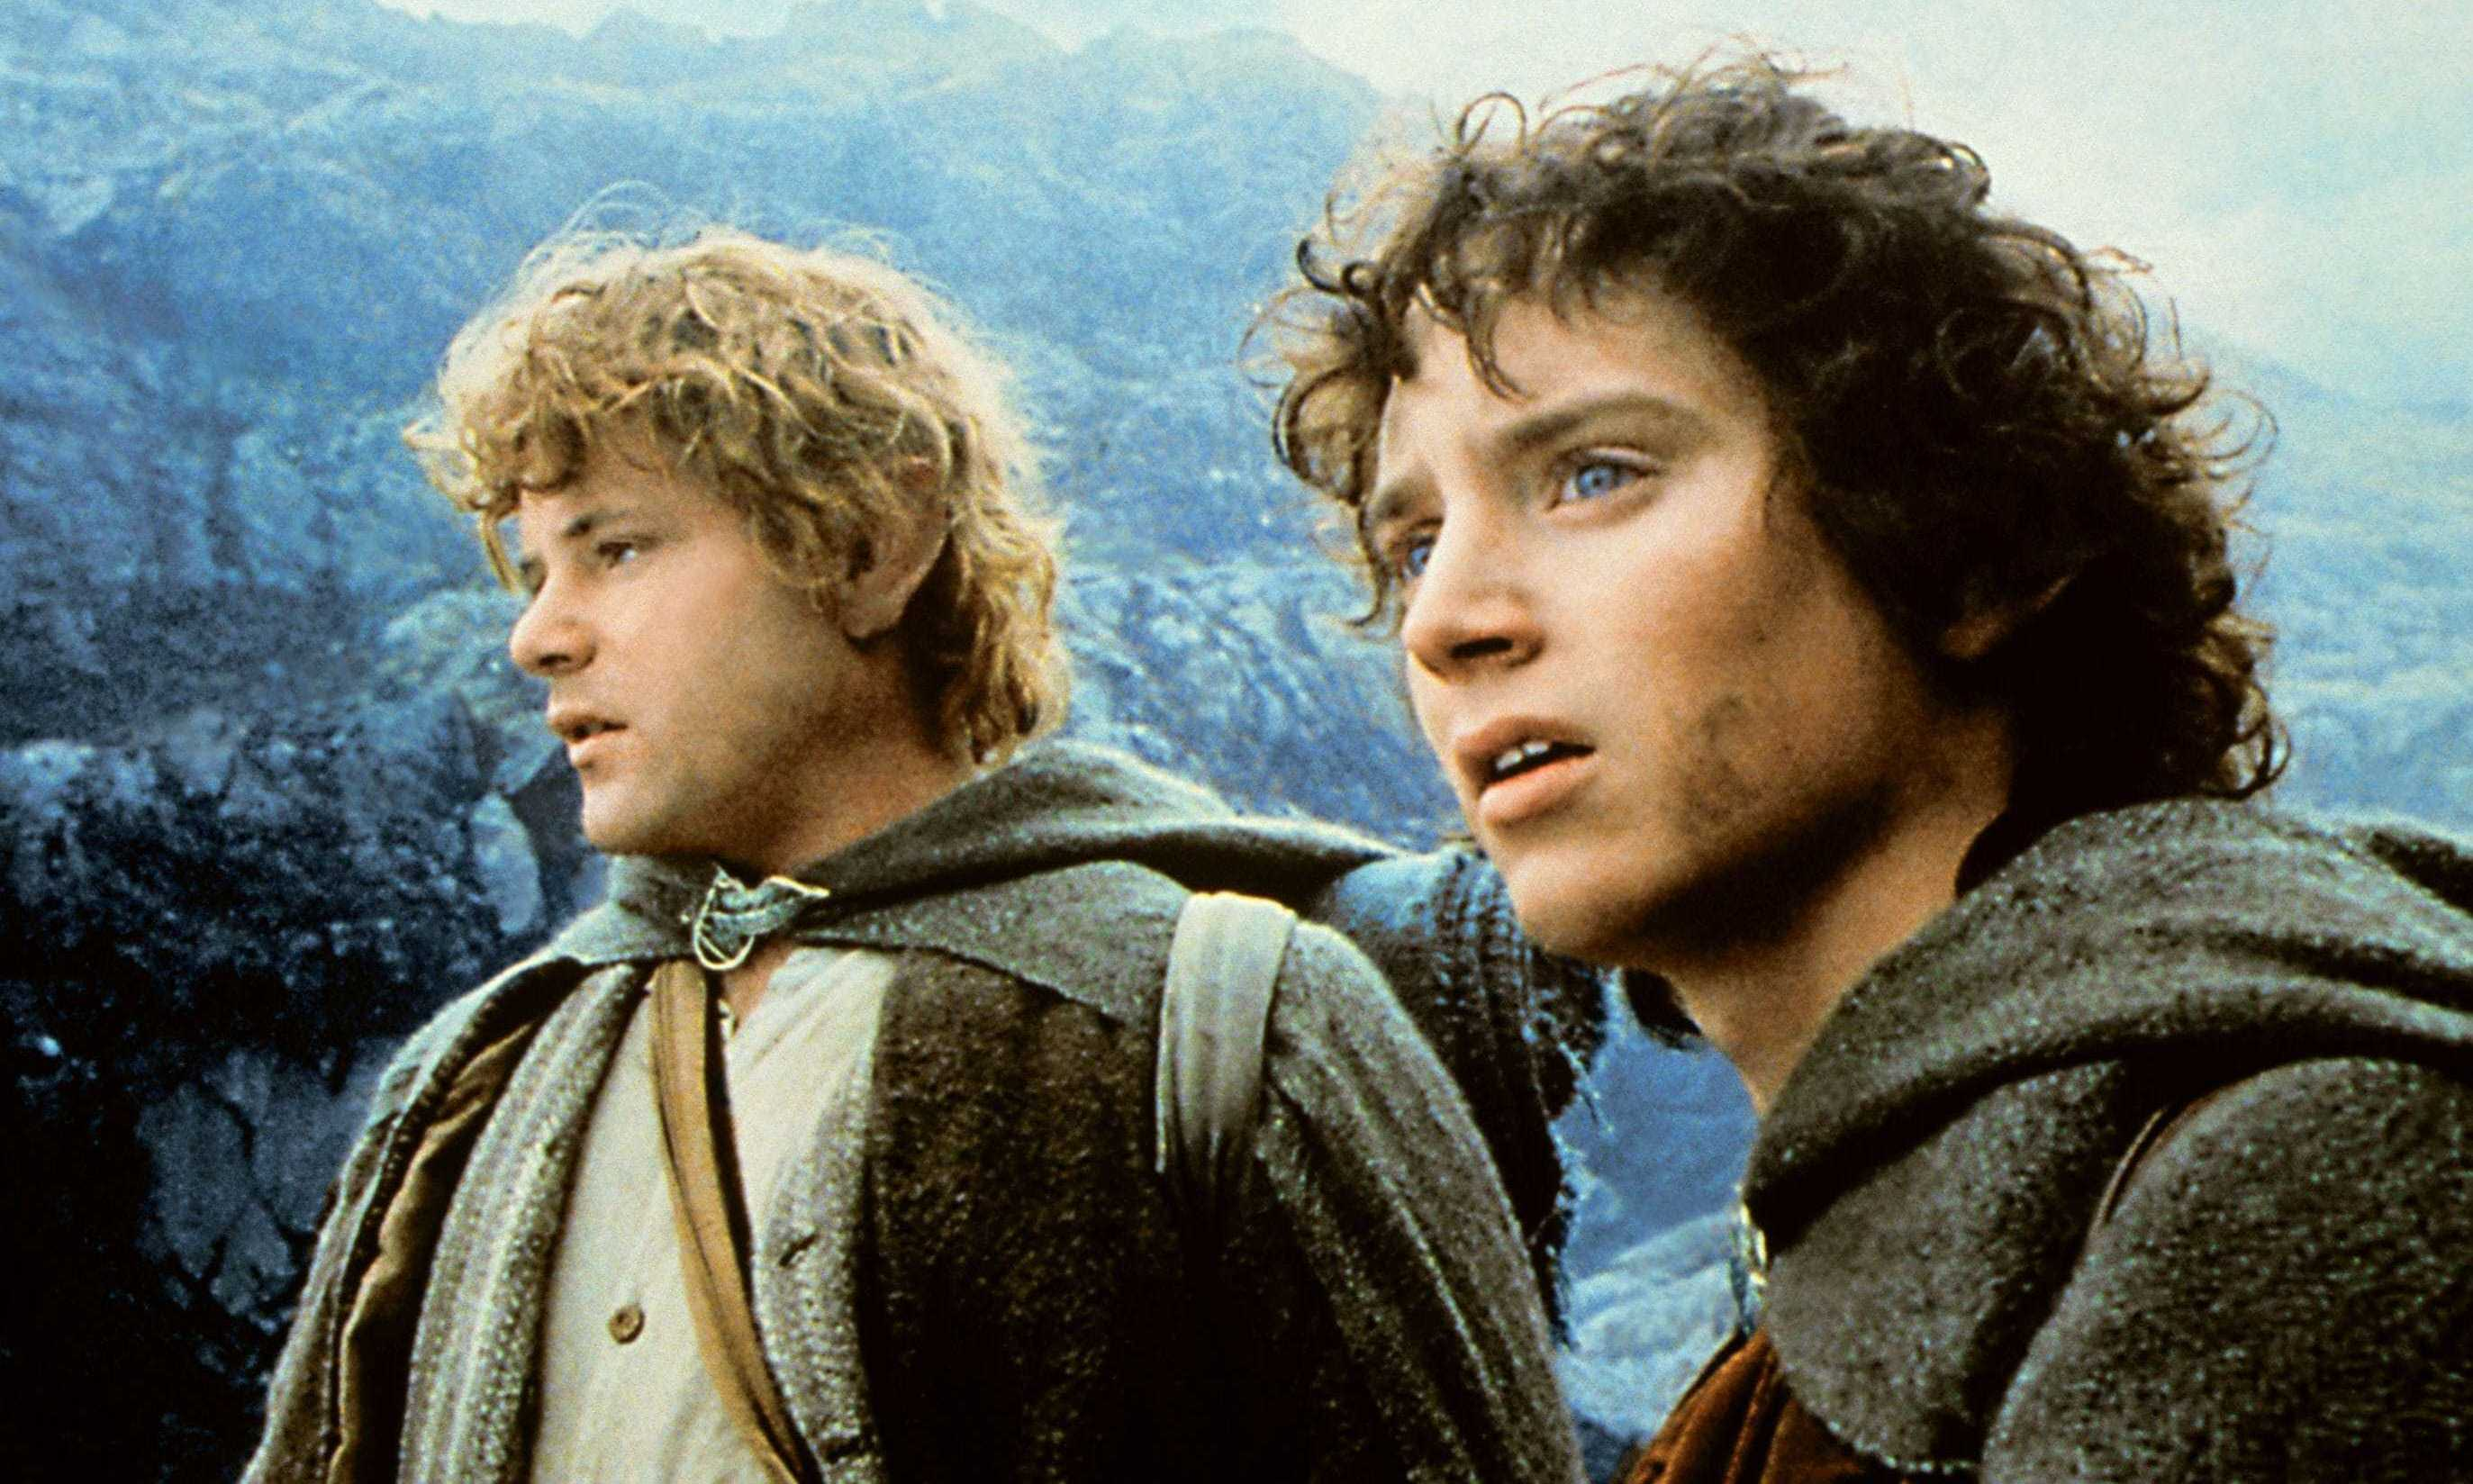 New Zealand loses its precious 'Lord of the Rings' series to Britain